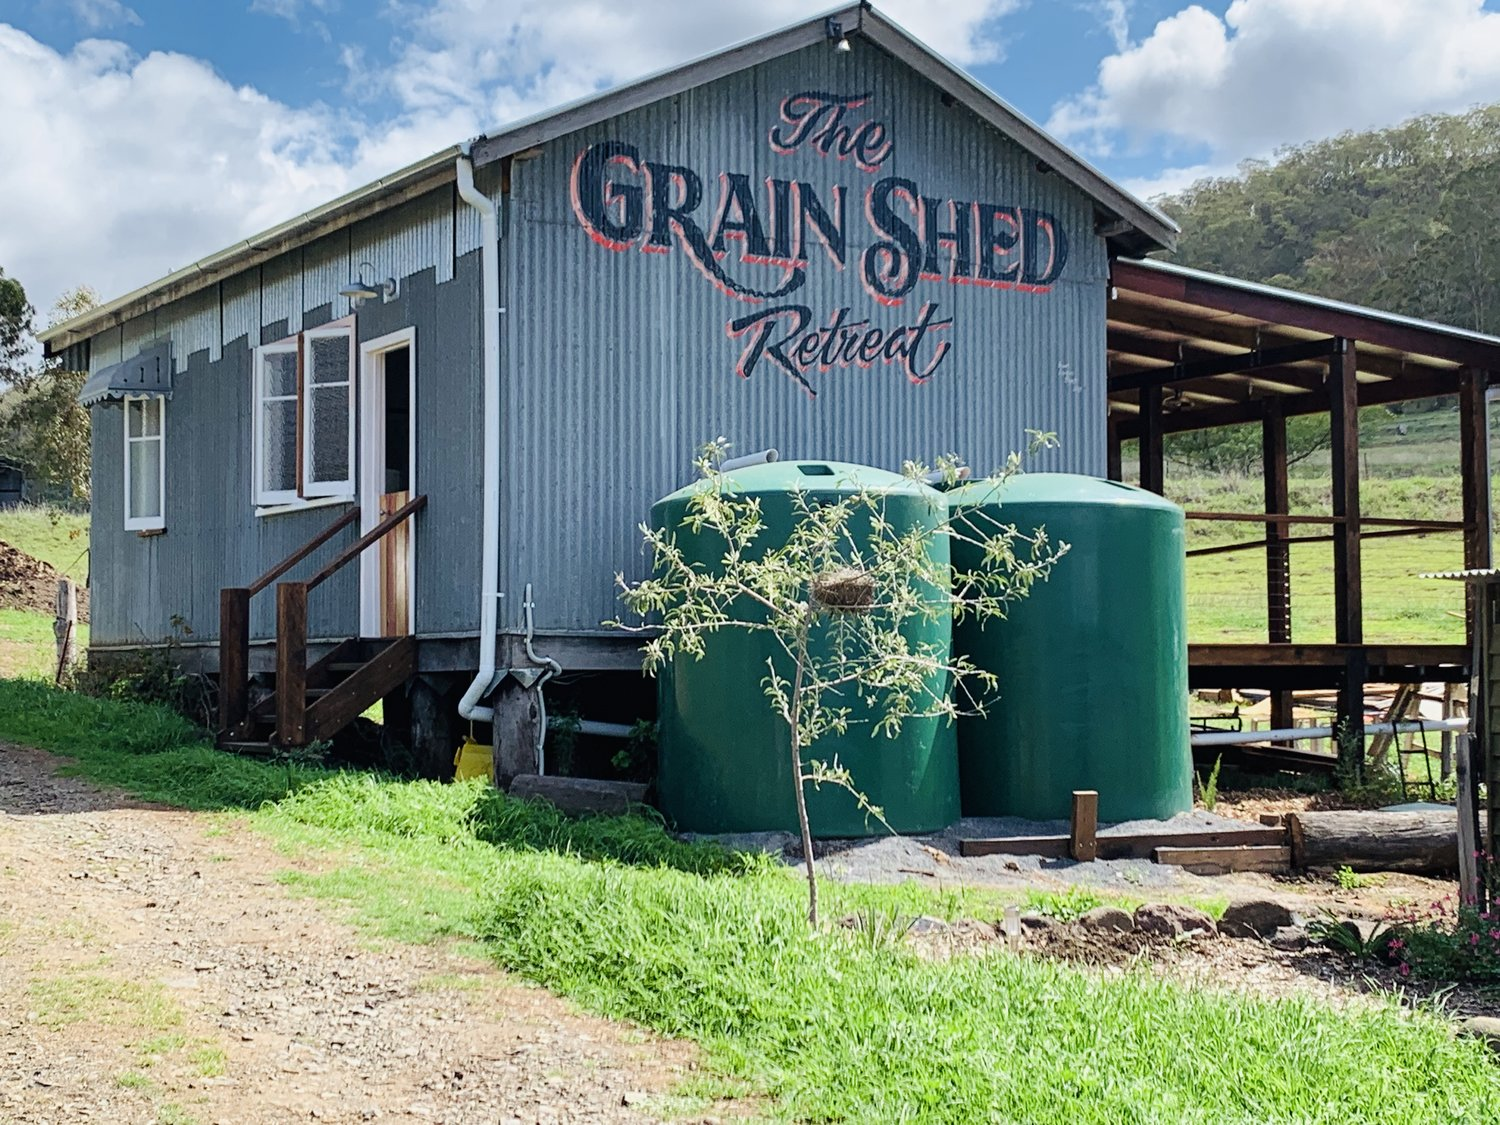 The Grain Shed Retreat outside view. Verandah visible. The Grain Shed Retreat is designed for disability access. Owned and operated by NDIS service provider Darling Downs Wellness Therapies.